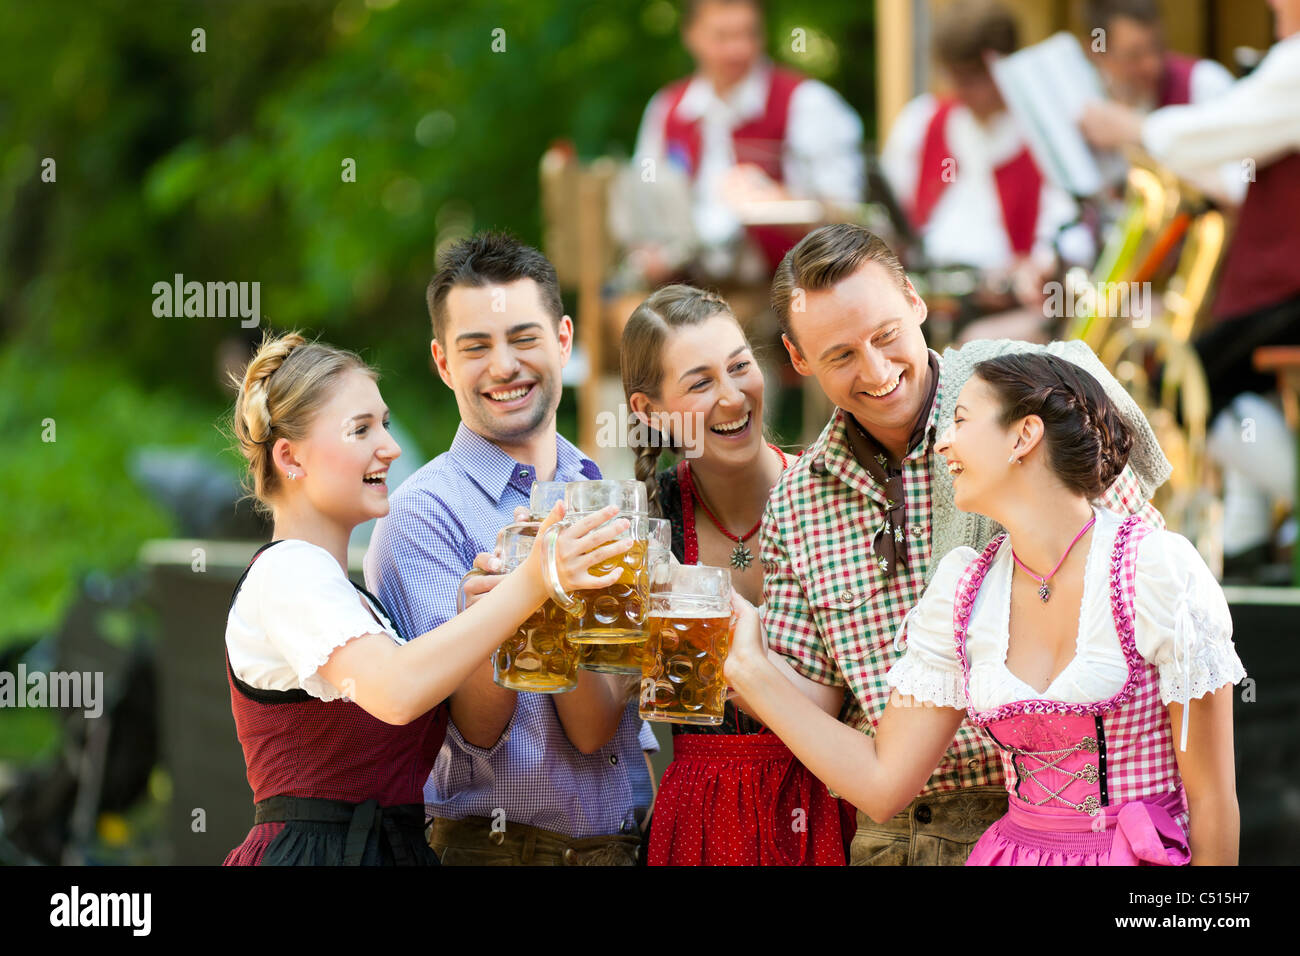 In Beer garden in Bavaria, Germany - friends in Tracht, Dirndl and Lederhosen and Dirndl standing in front of band - Stock Image